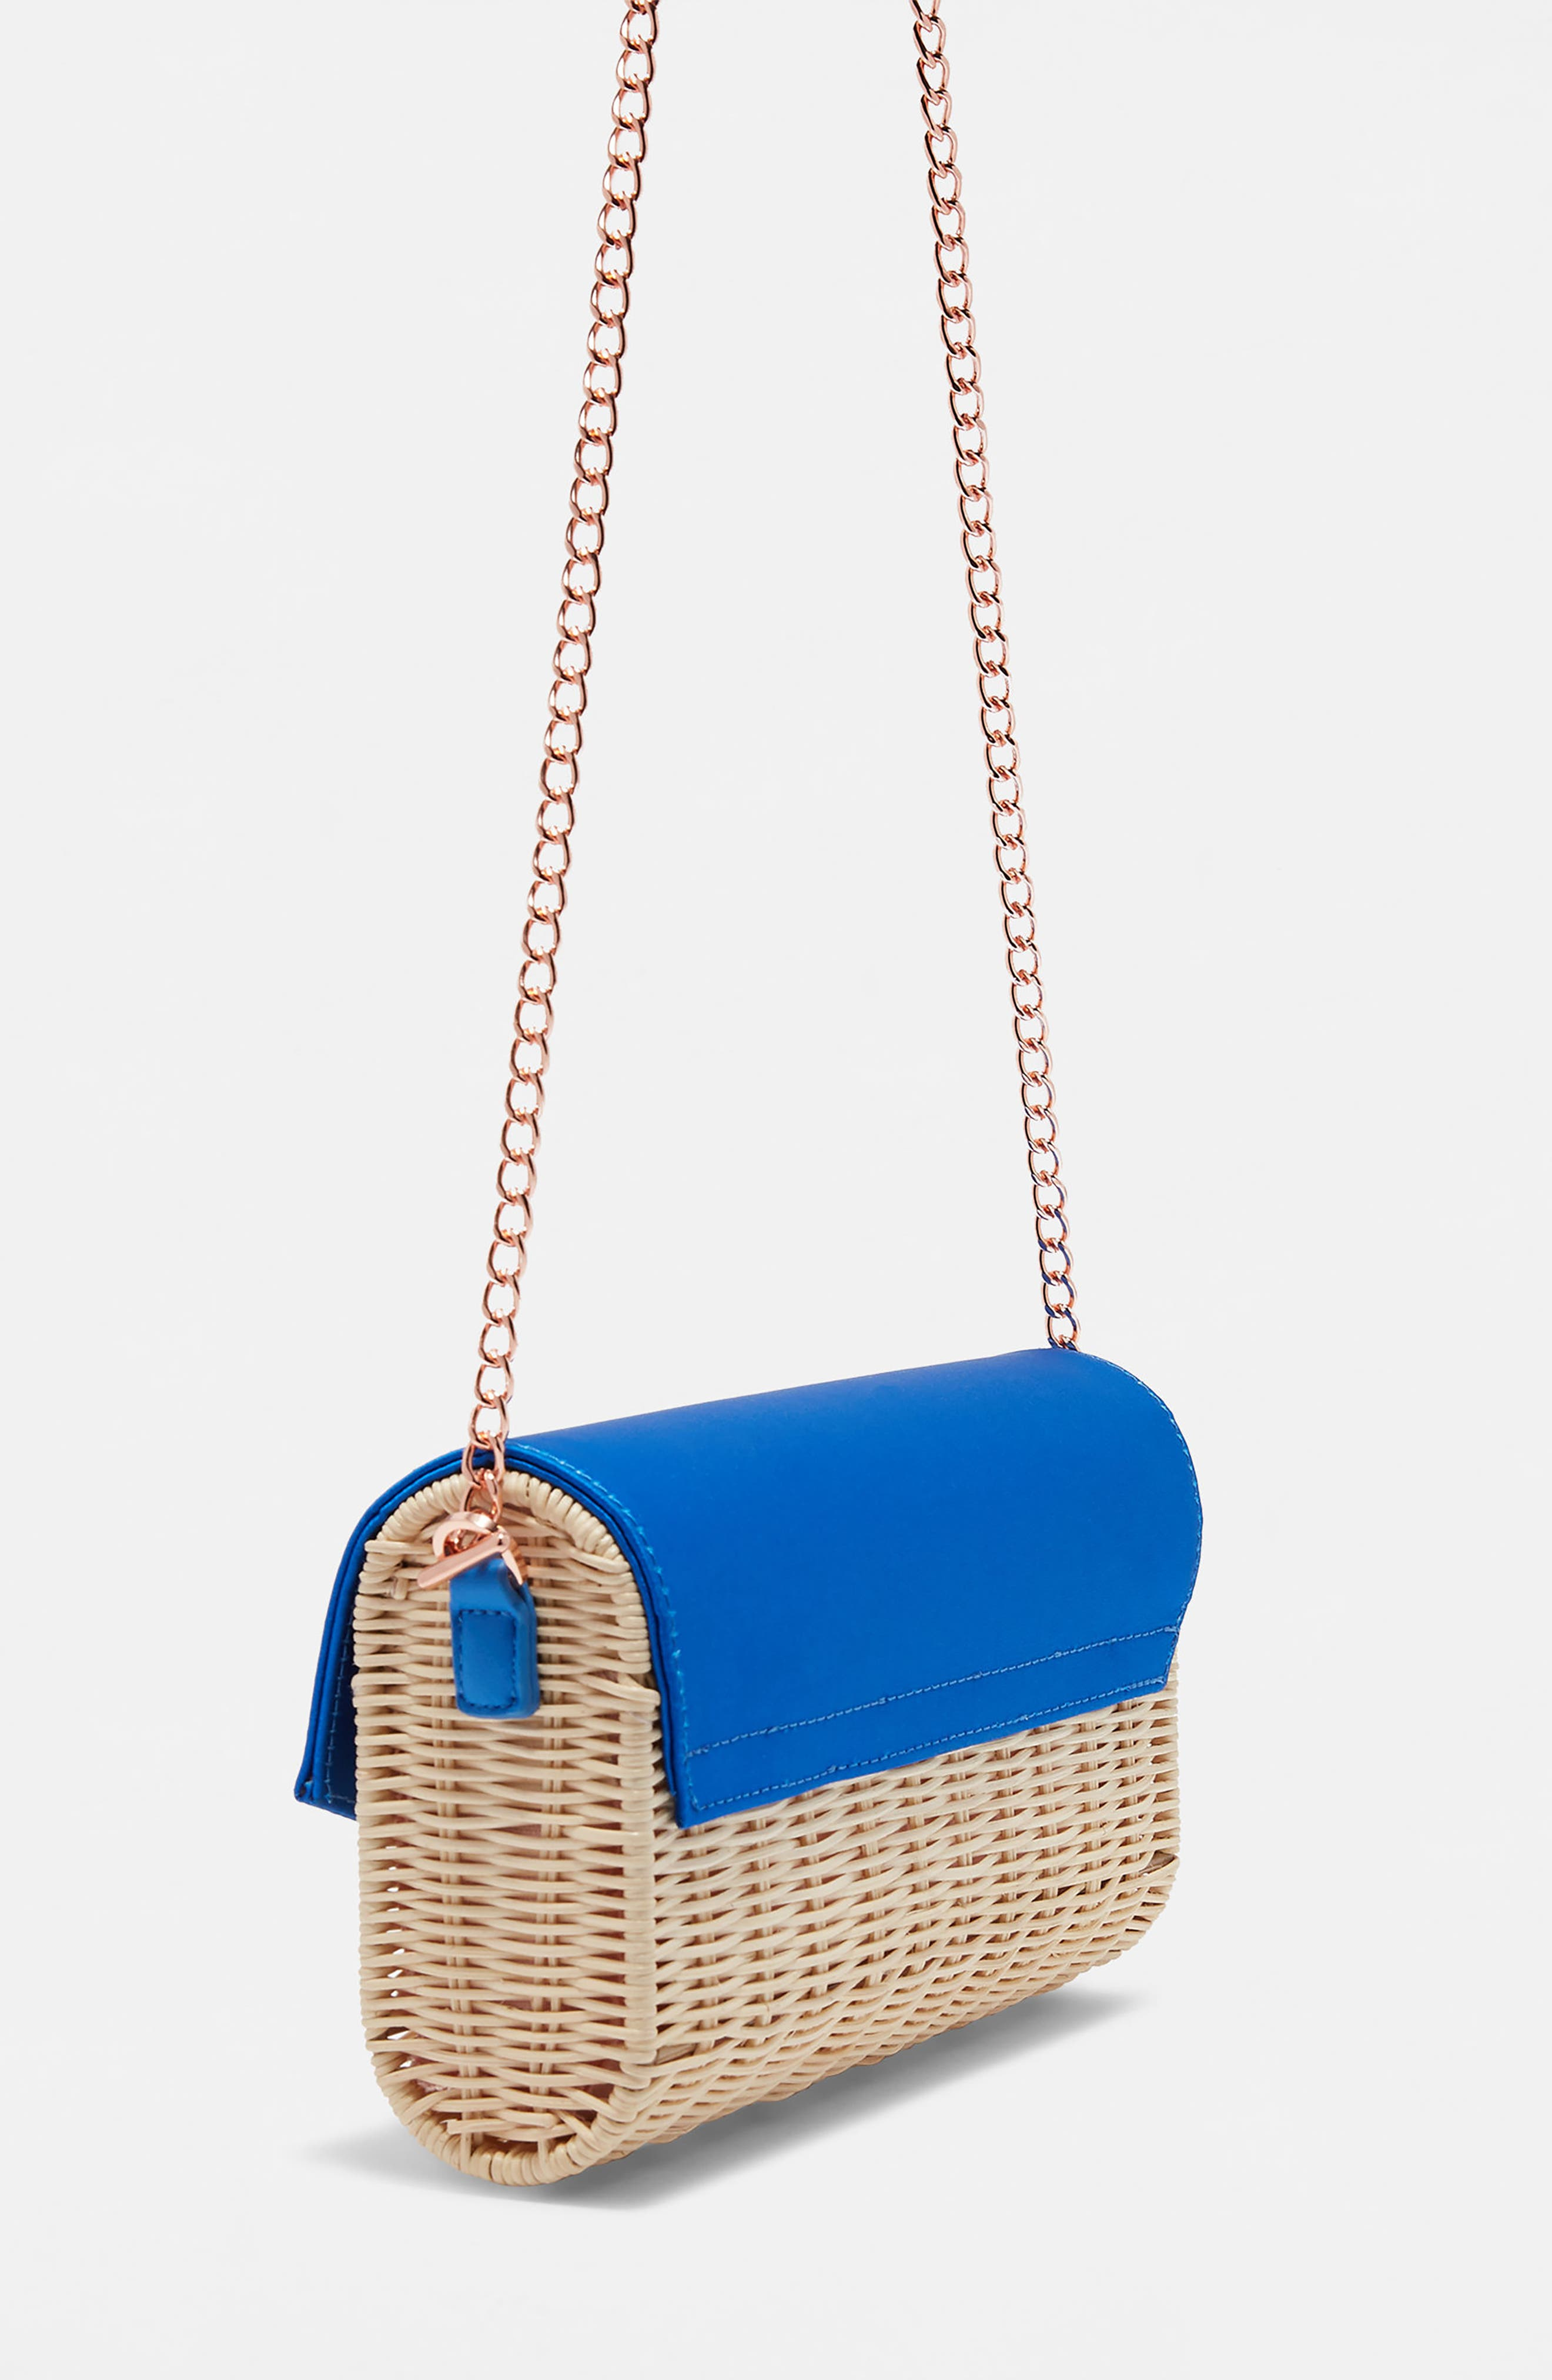 Haarley Harmony Woven Rattan Clutch,                             Alternate thumbnail 3, color,                             430